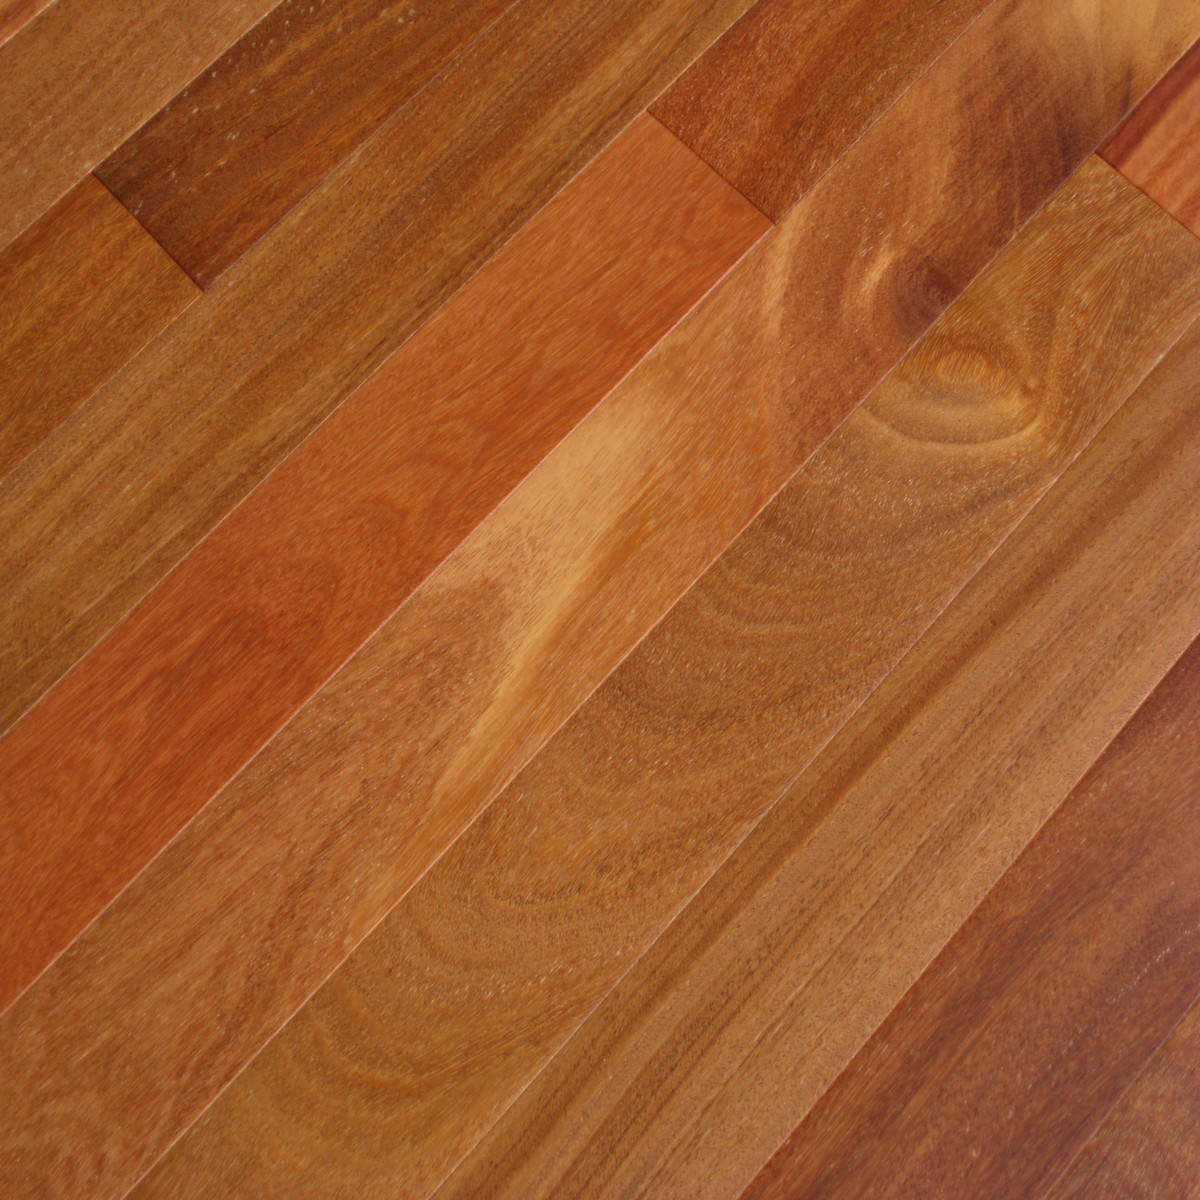 Cumaru dark brazilian teak hardwood flooring for Hardwood flooring